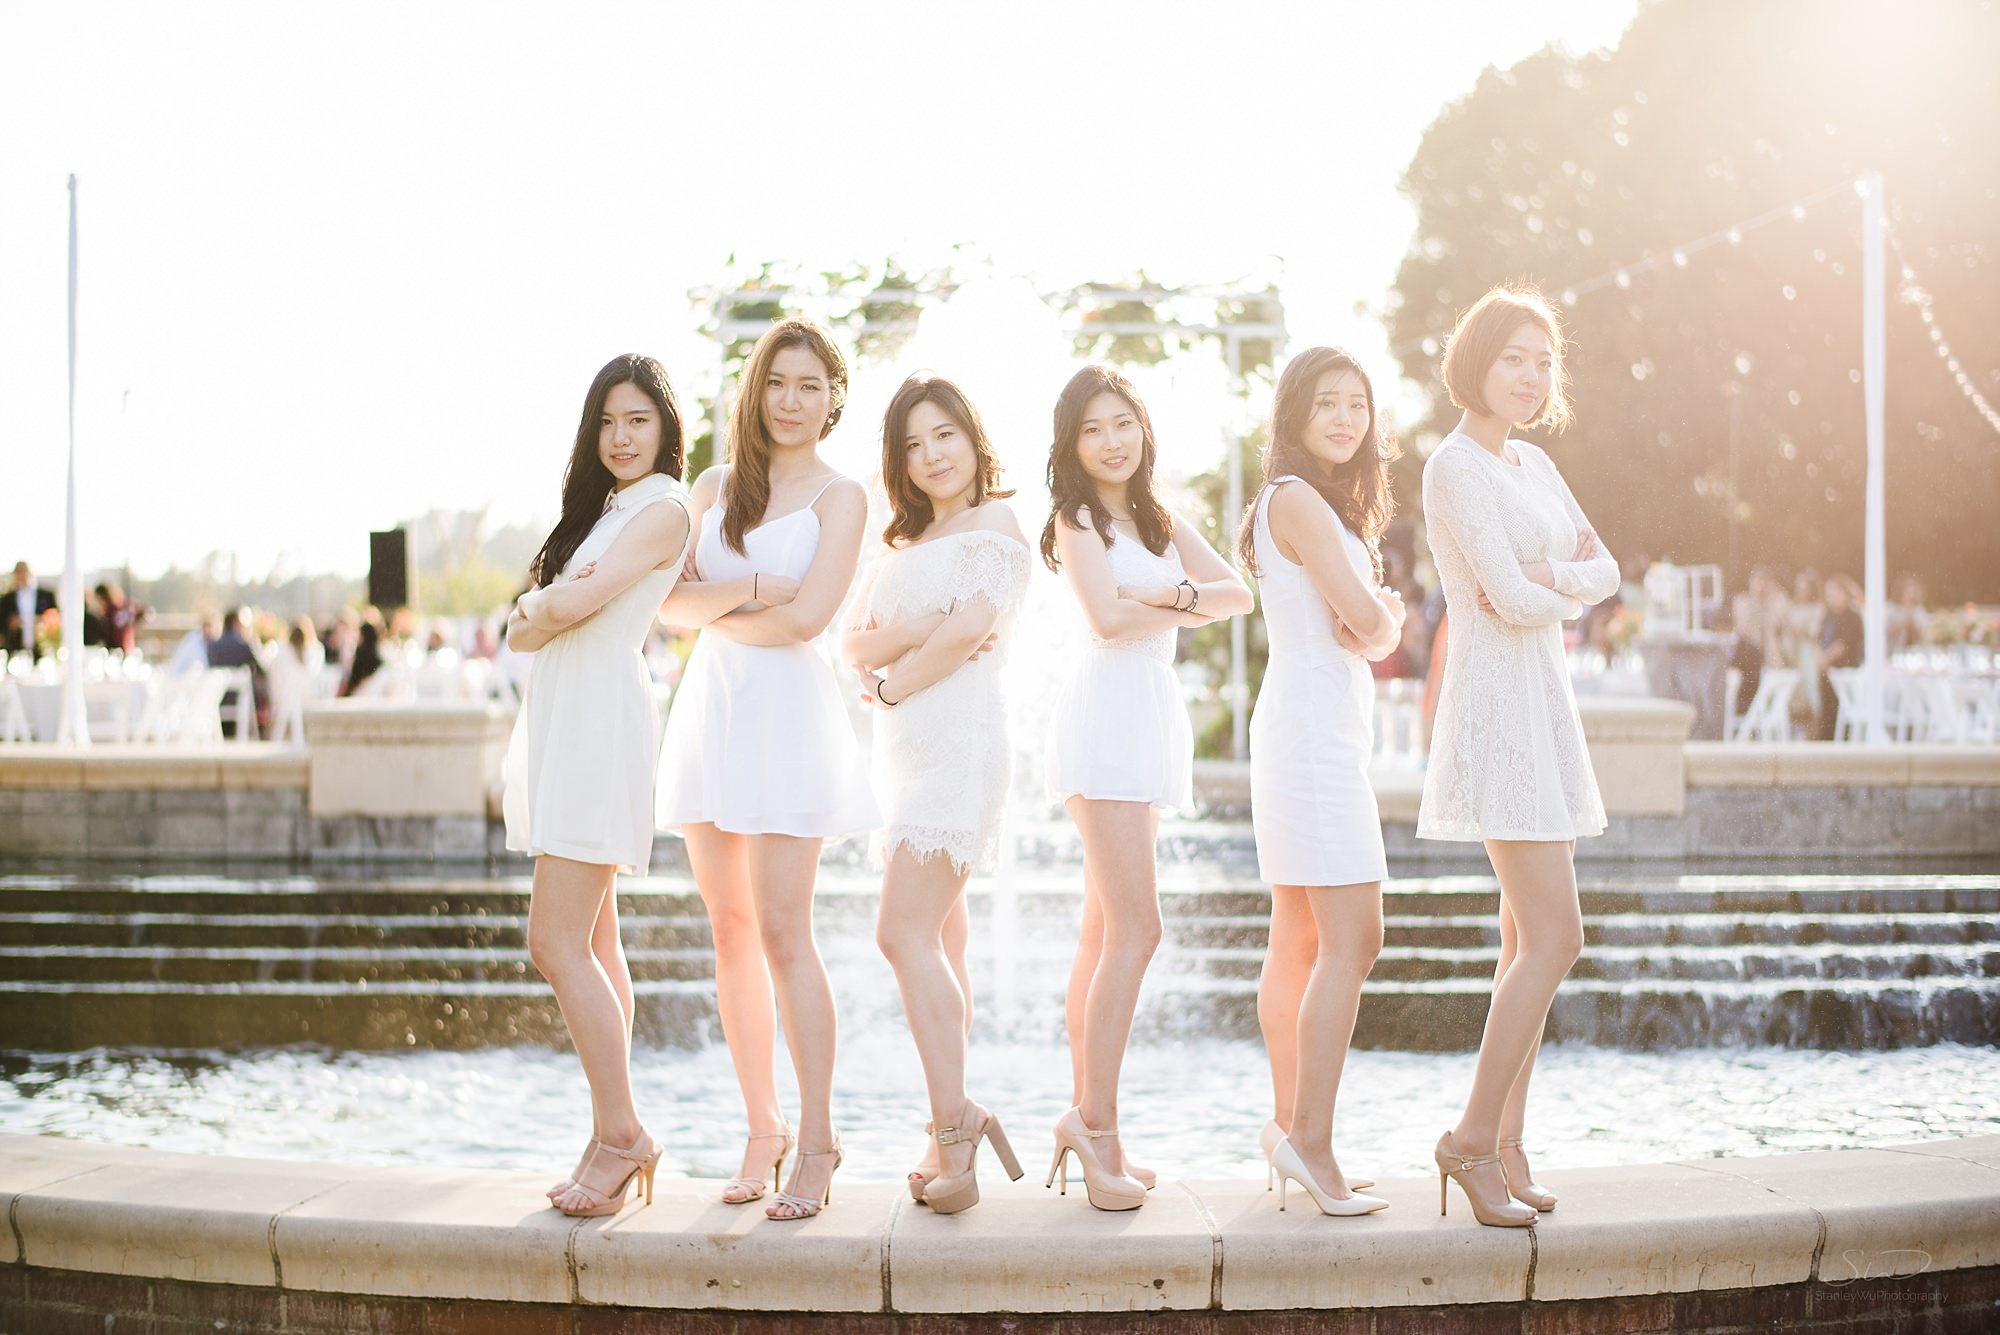 graduation senior portrait of korean girls doing a kpop pose in front of a fountain with a beautiful sunset in the background at ucla in los angeles